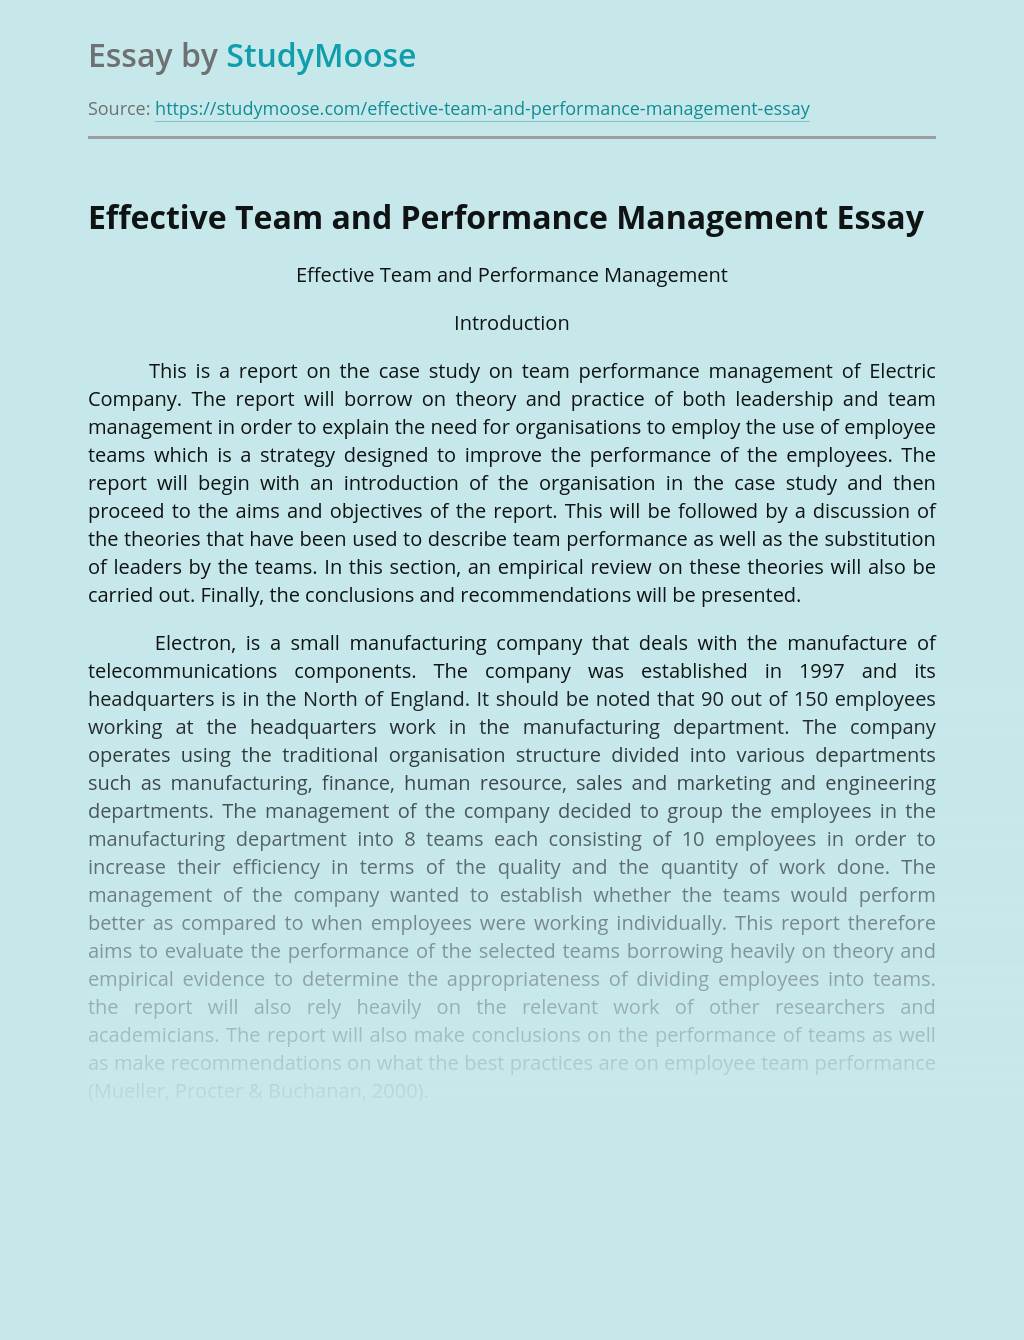 Effective Team and Performance Management